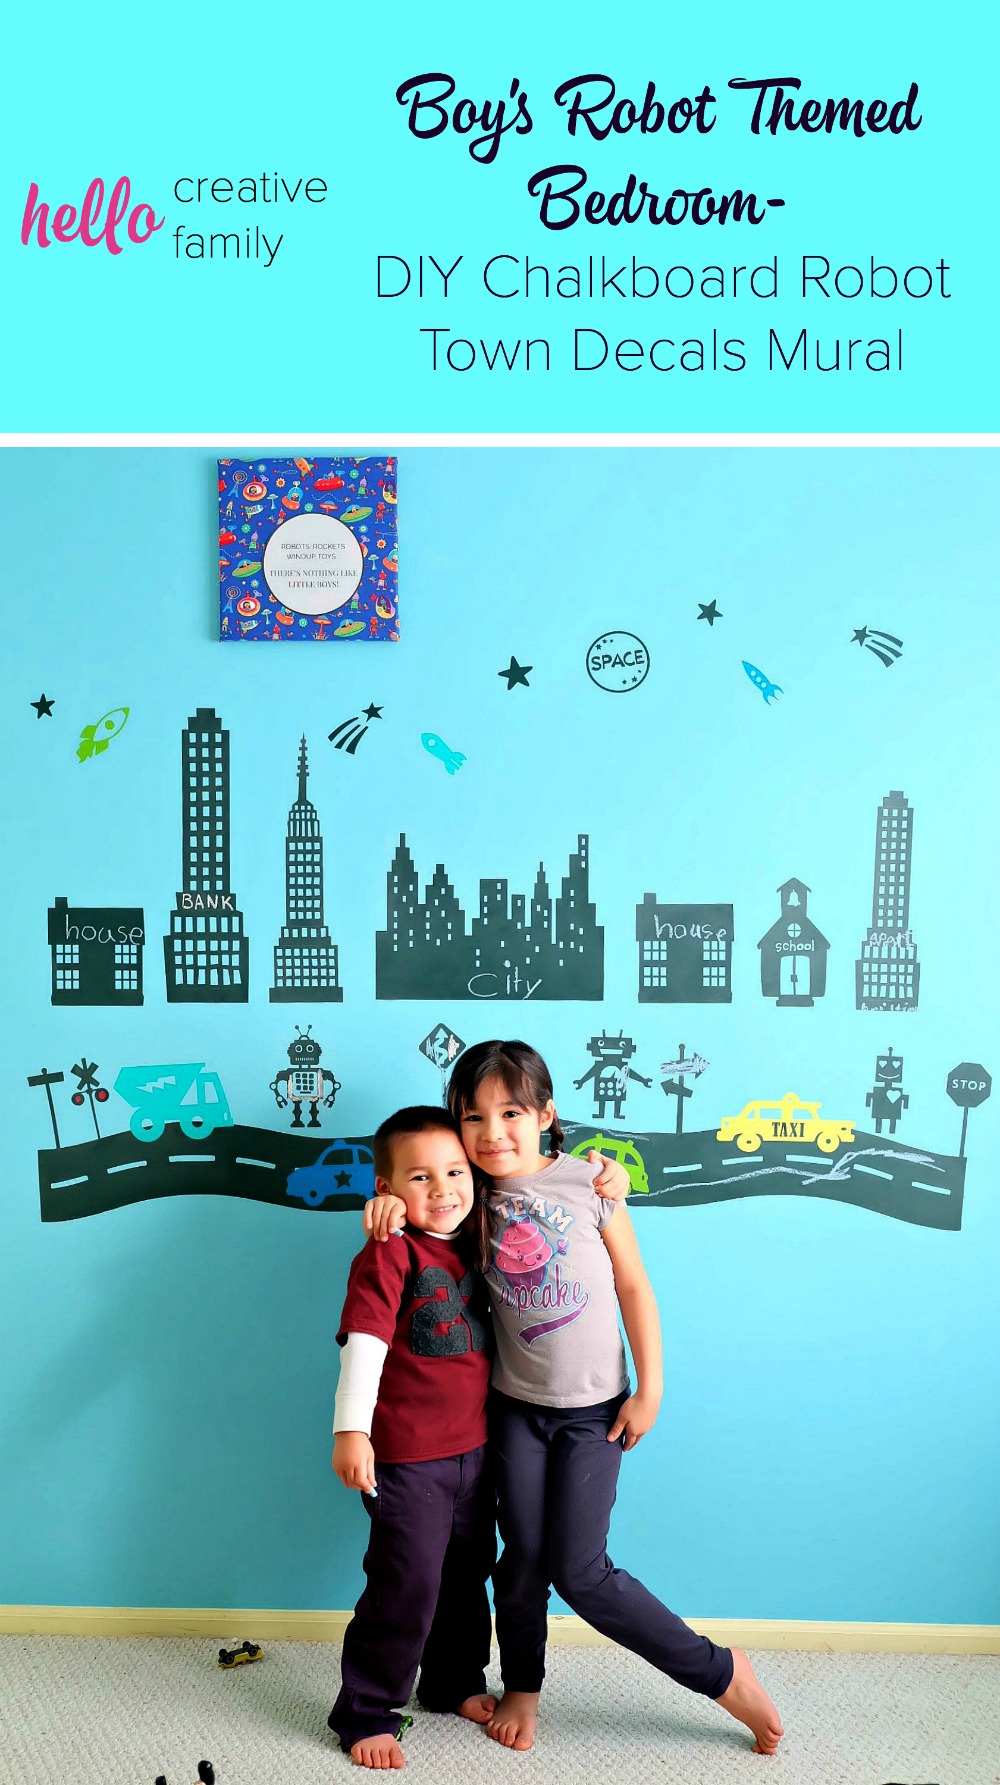 Cutest boys room idea ever! How adorable is this chalkboard robot town mural. I love these DIY decals!